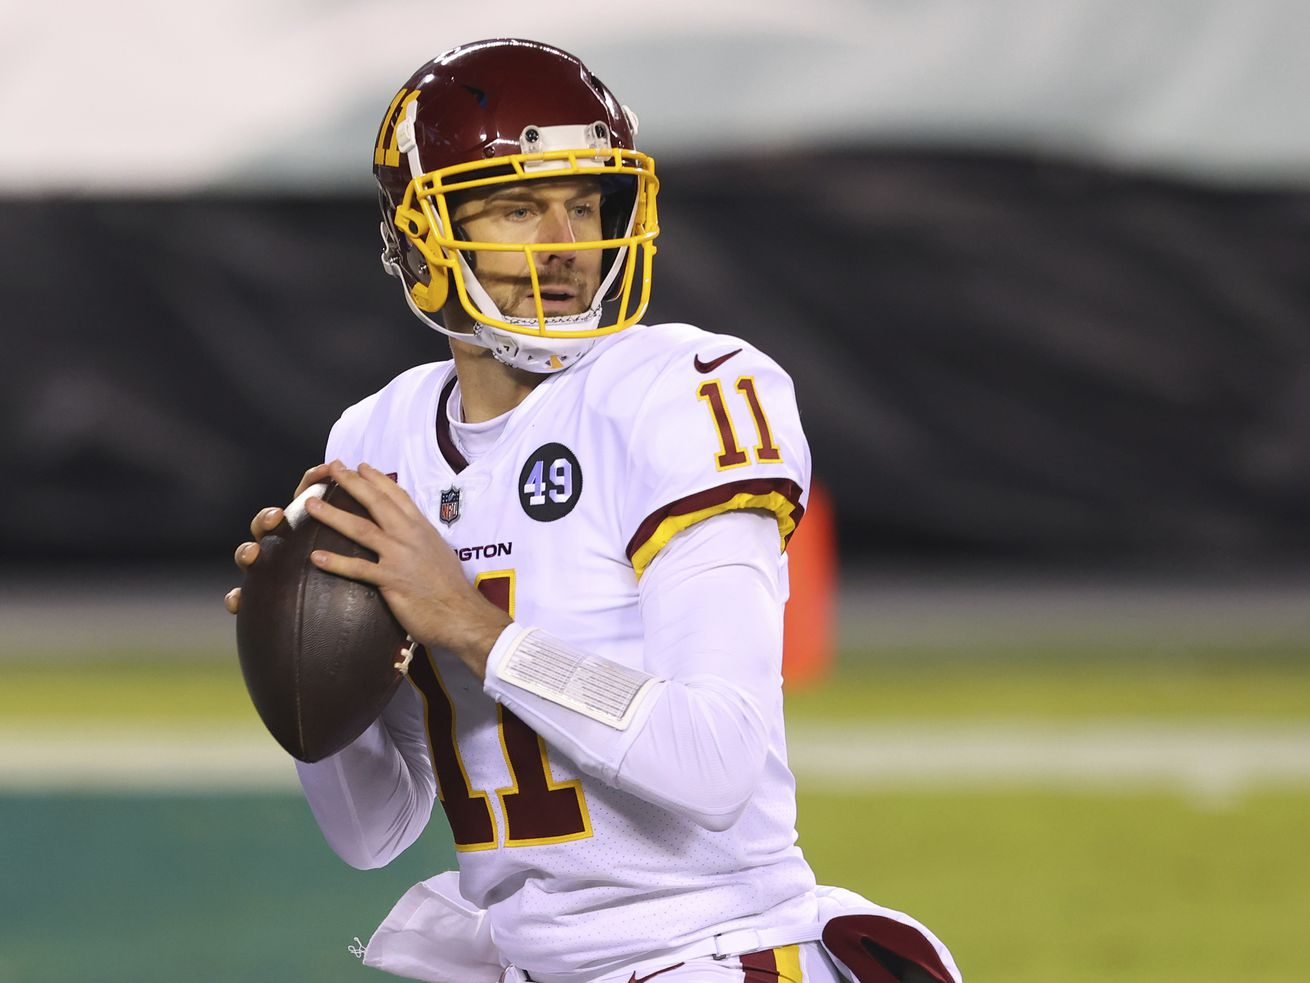 NFL Comeback Player of the Year honors are beginning to pile up for Alex Smith